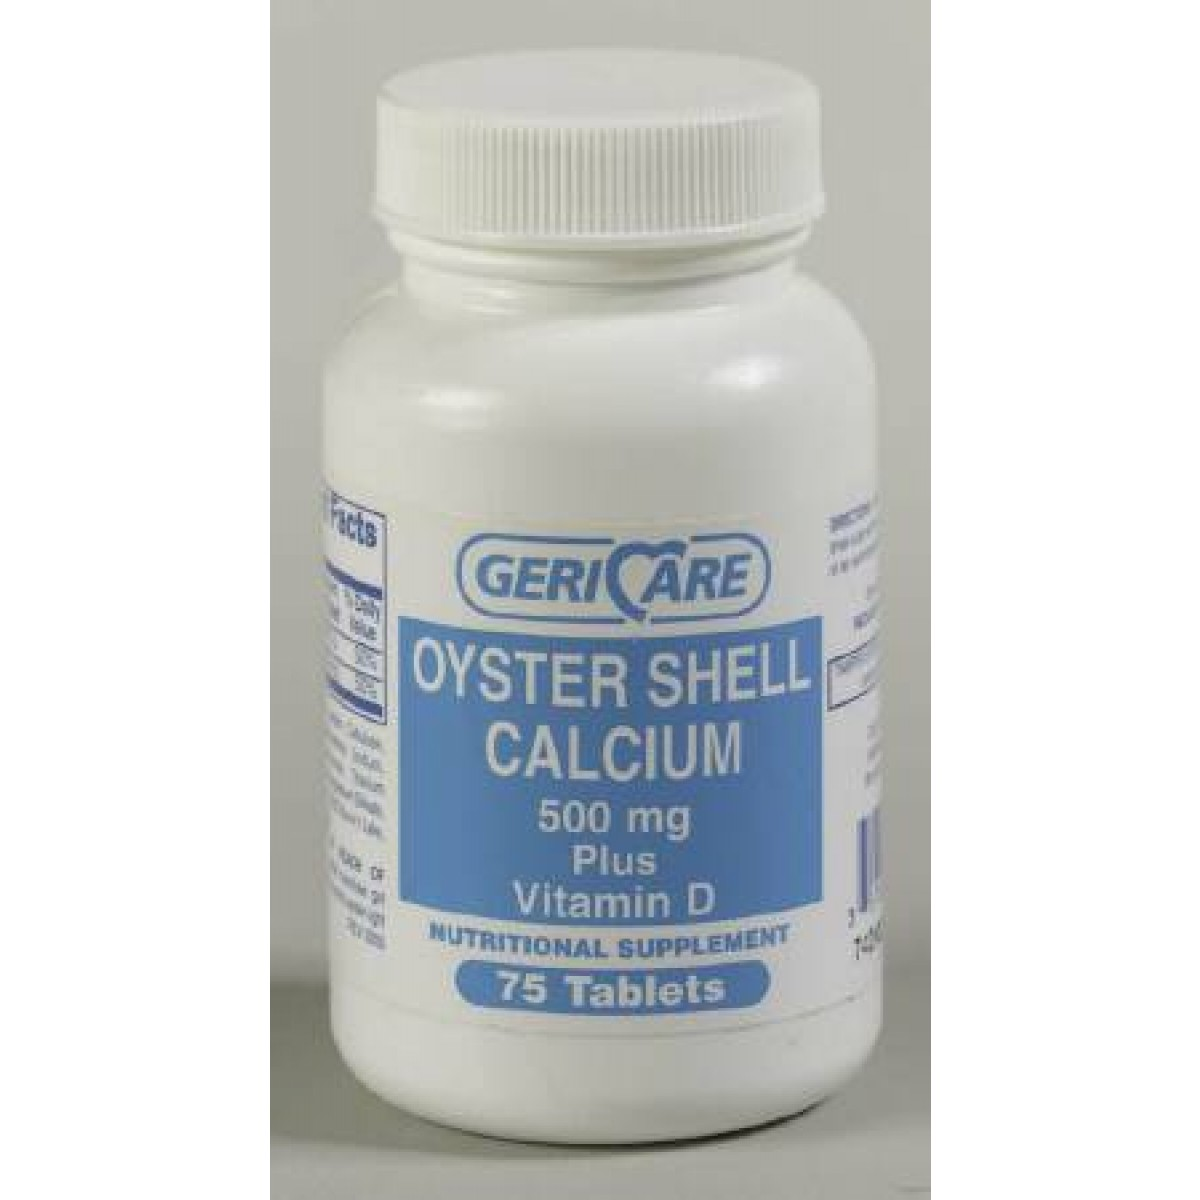 Calcium supplements brands